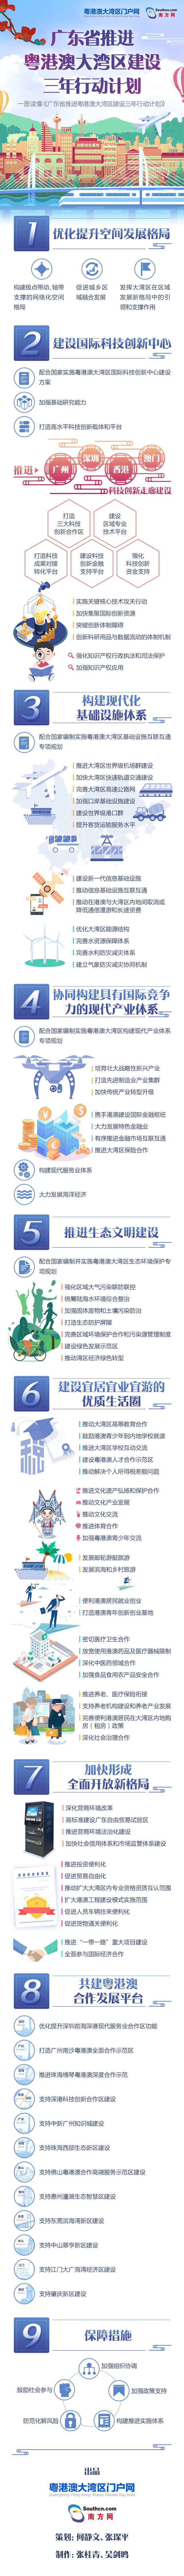 text长图V2.png